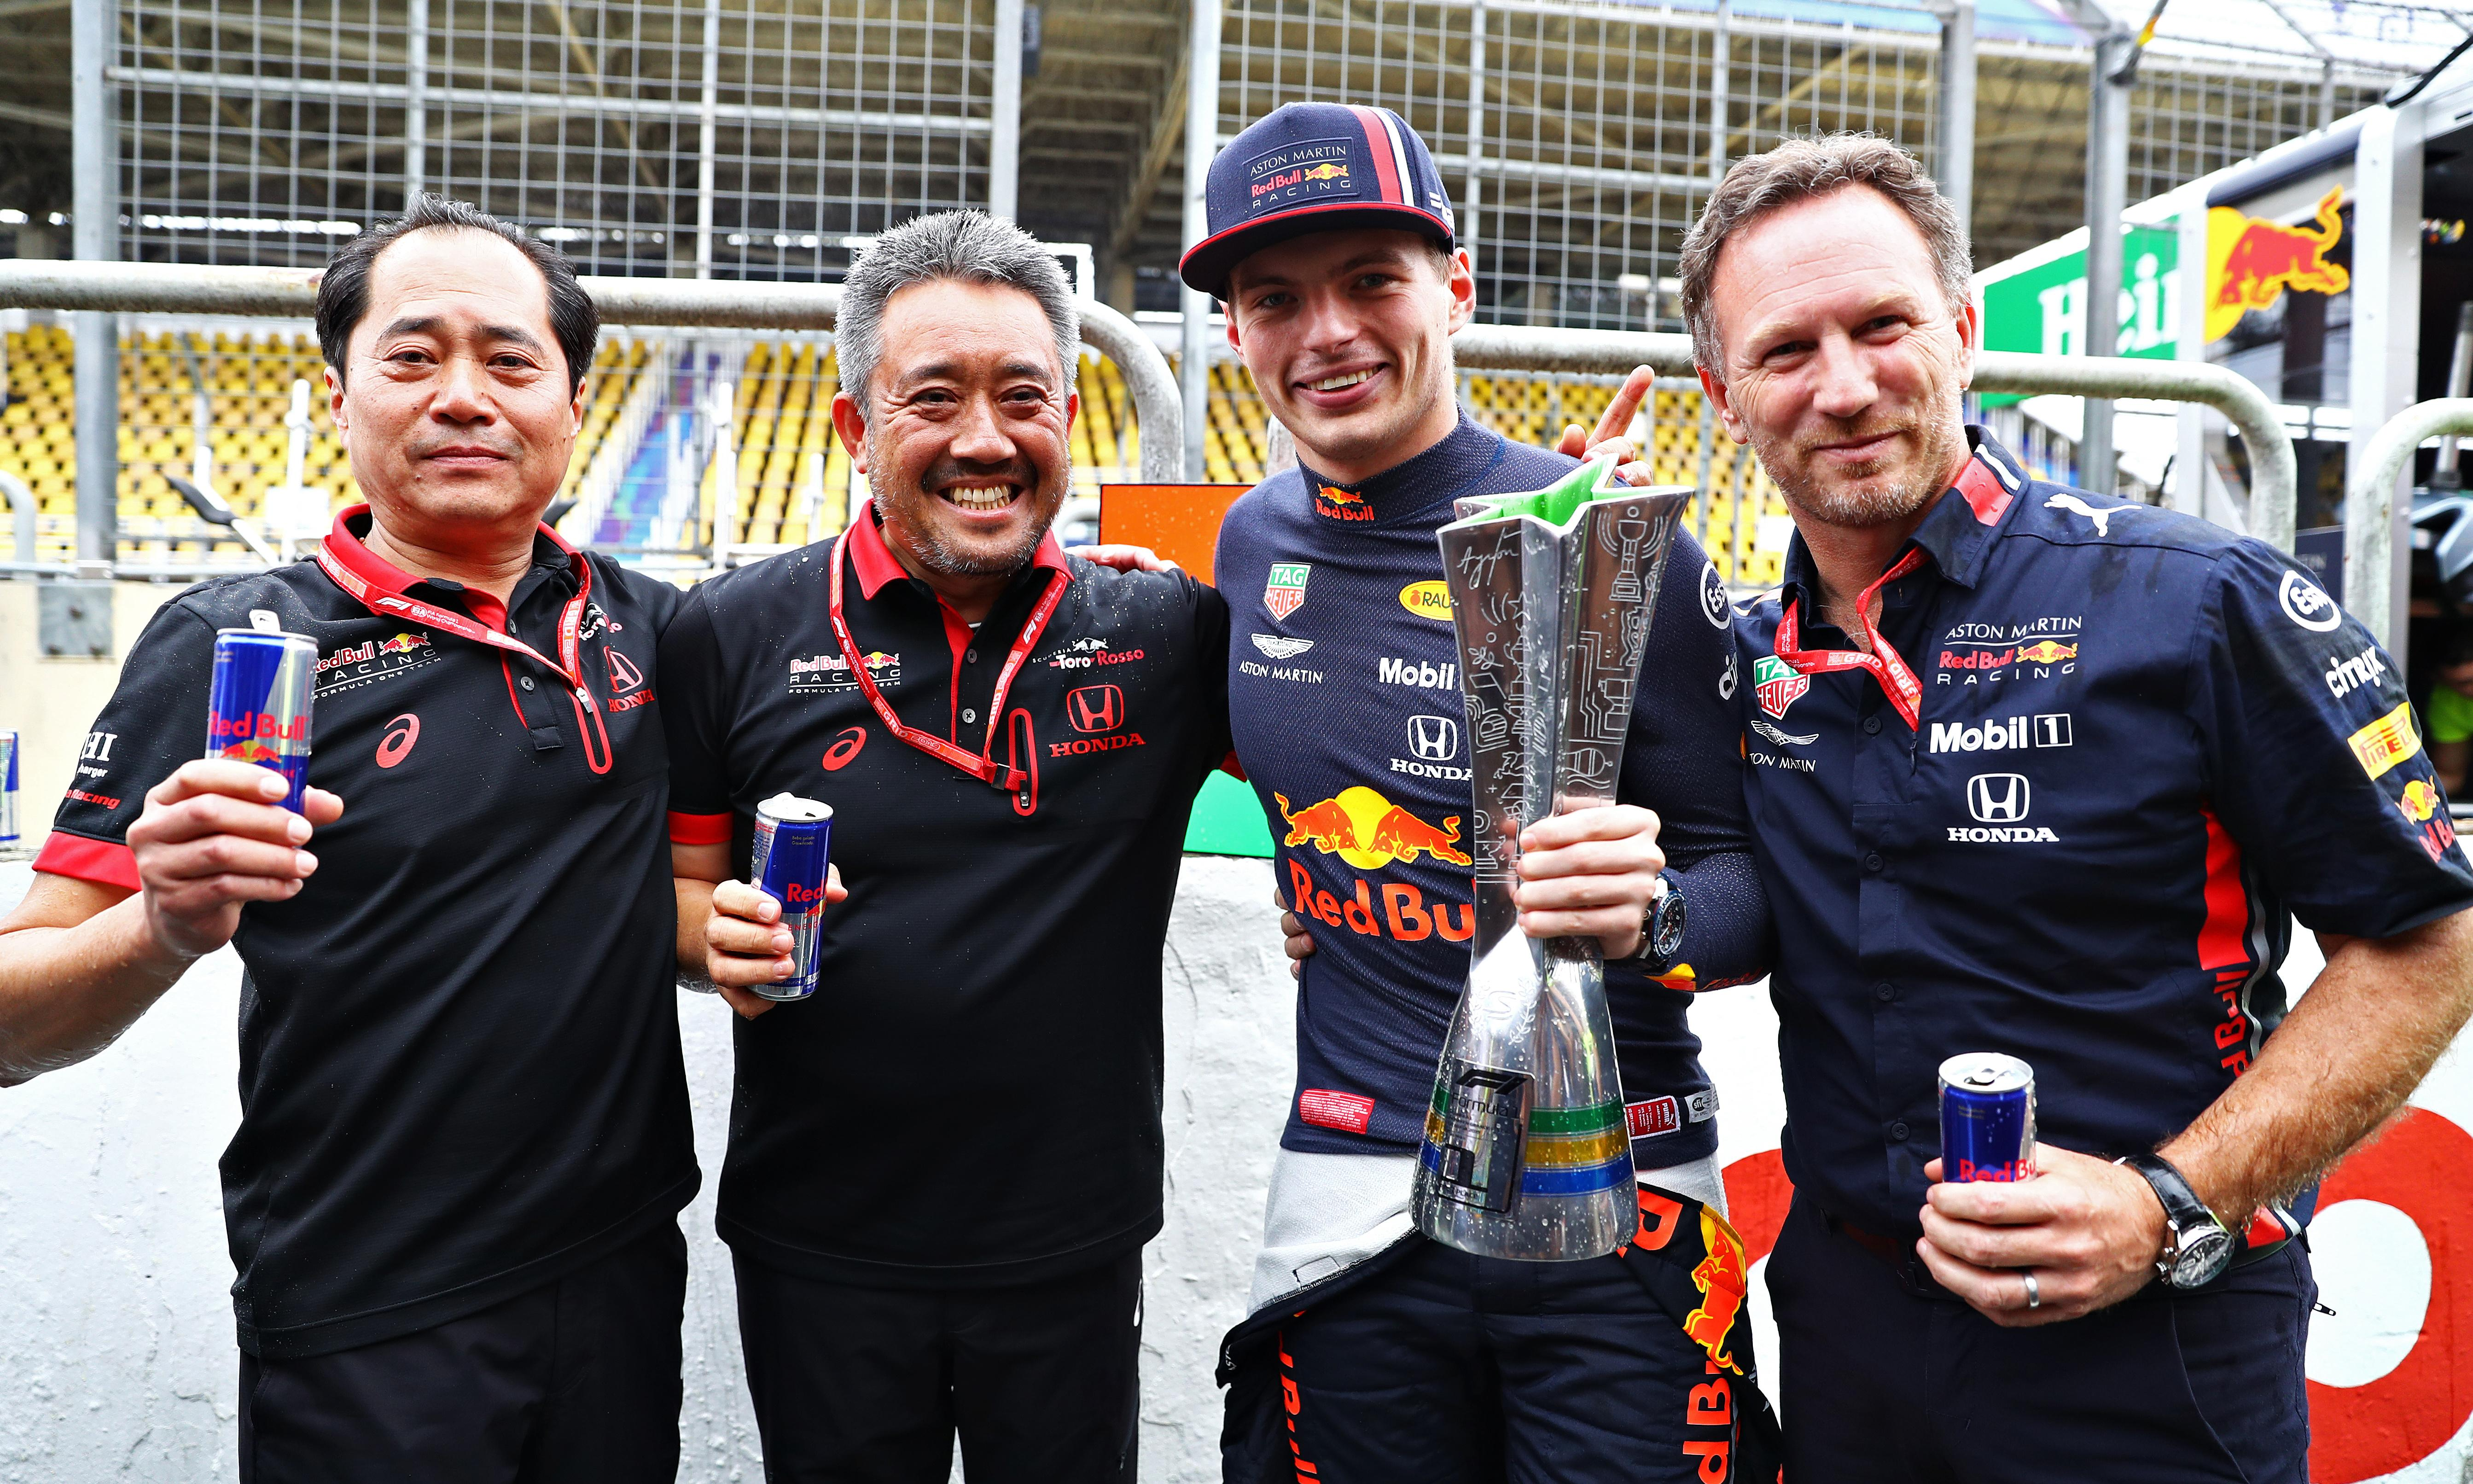 Max Verstappen's decision suggests F1 title tilt from Red Bull and Honda